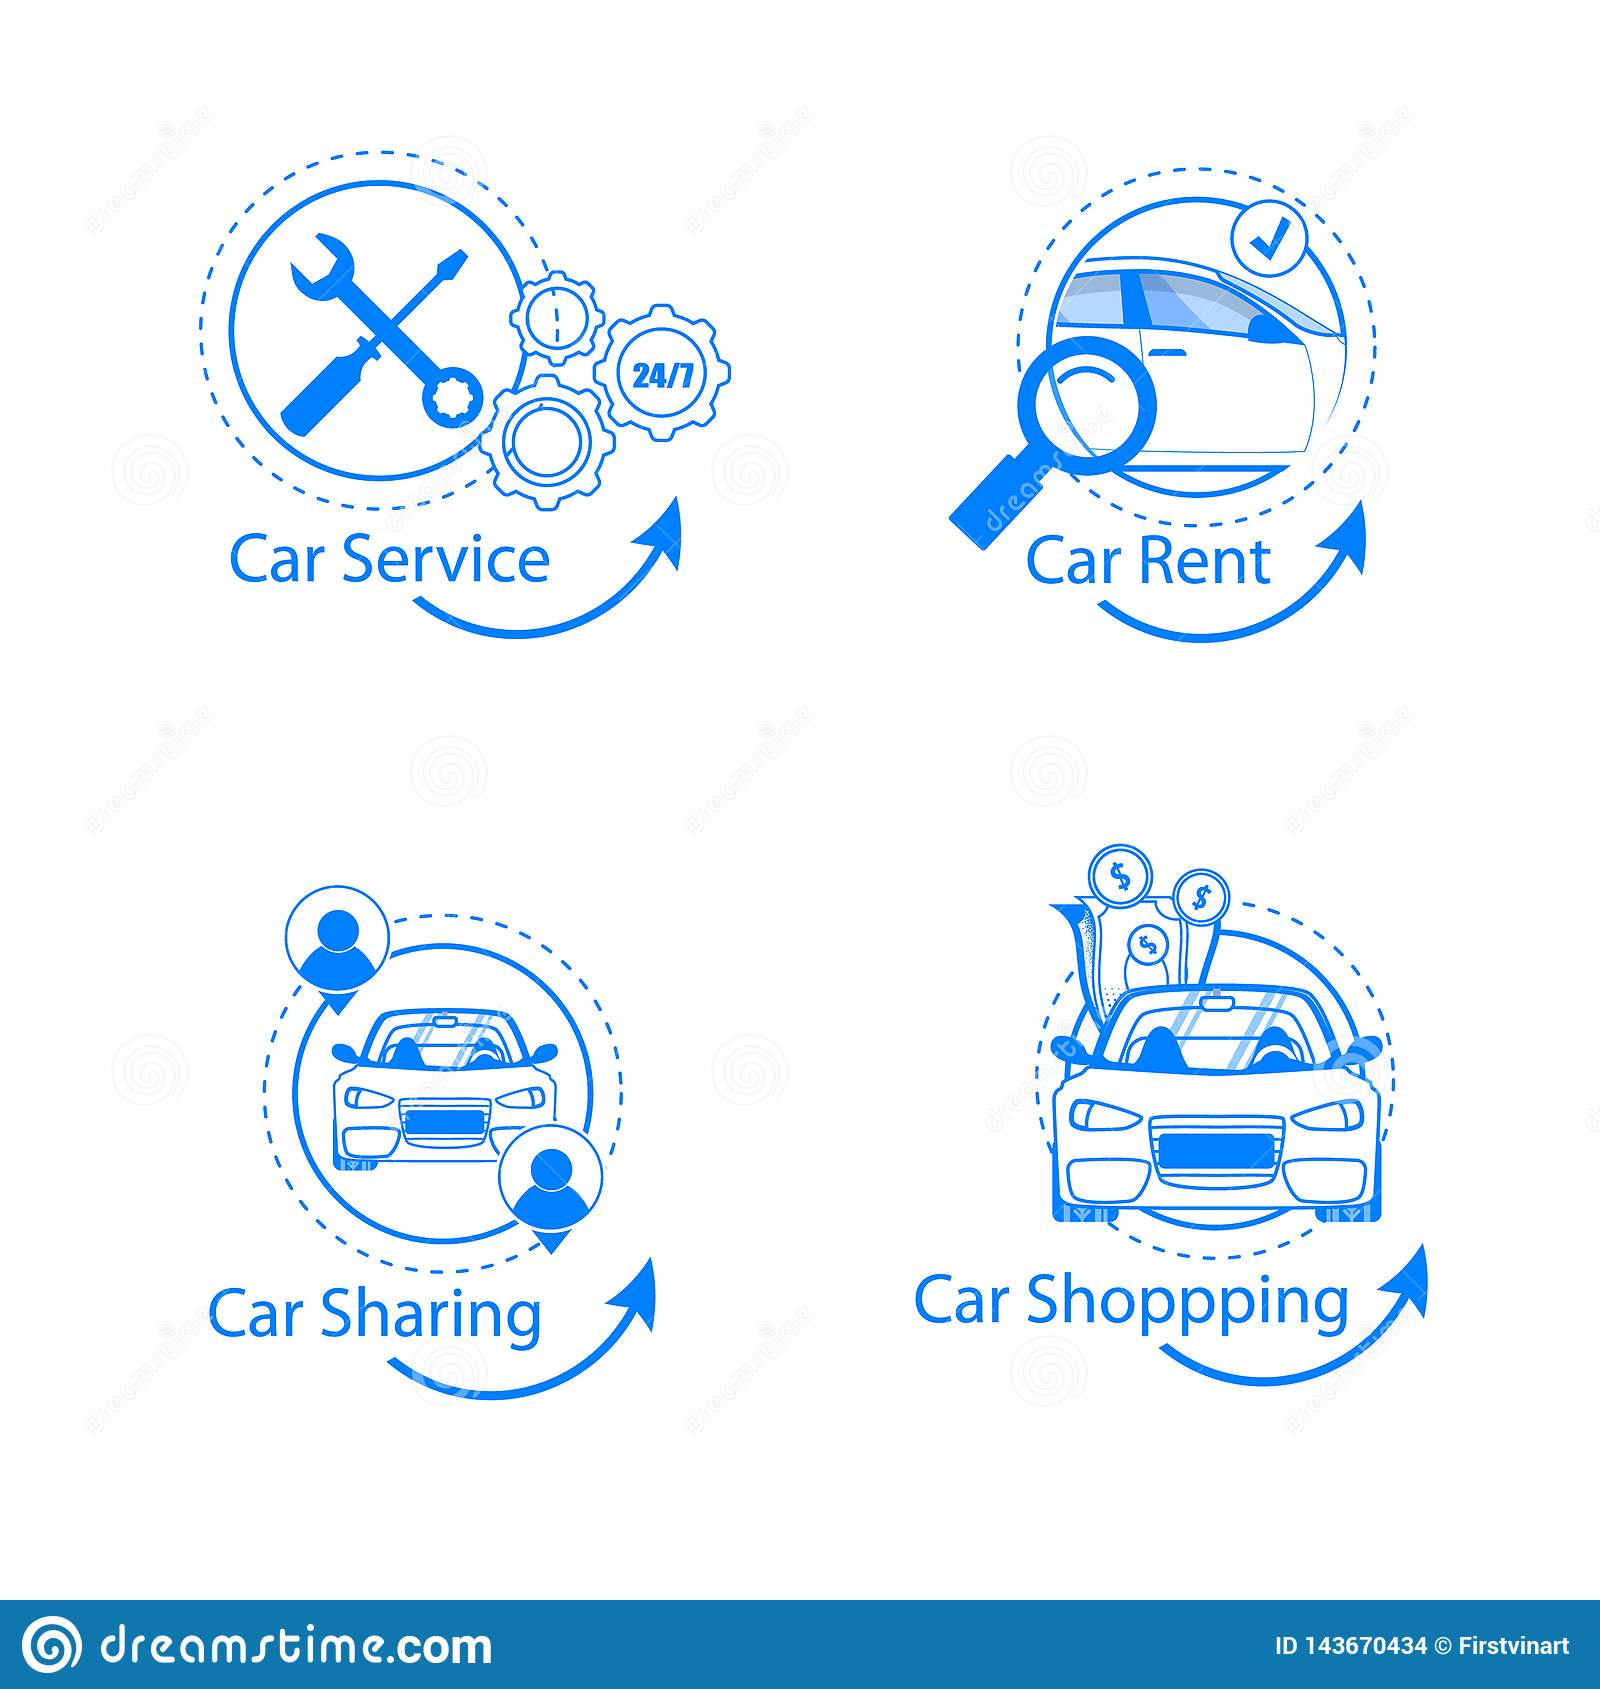 Car Sharing, Rent, Shopping, Service Flat Icon Set